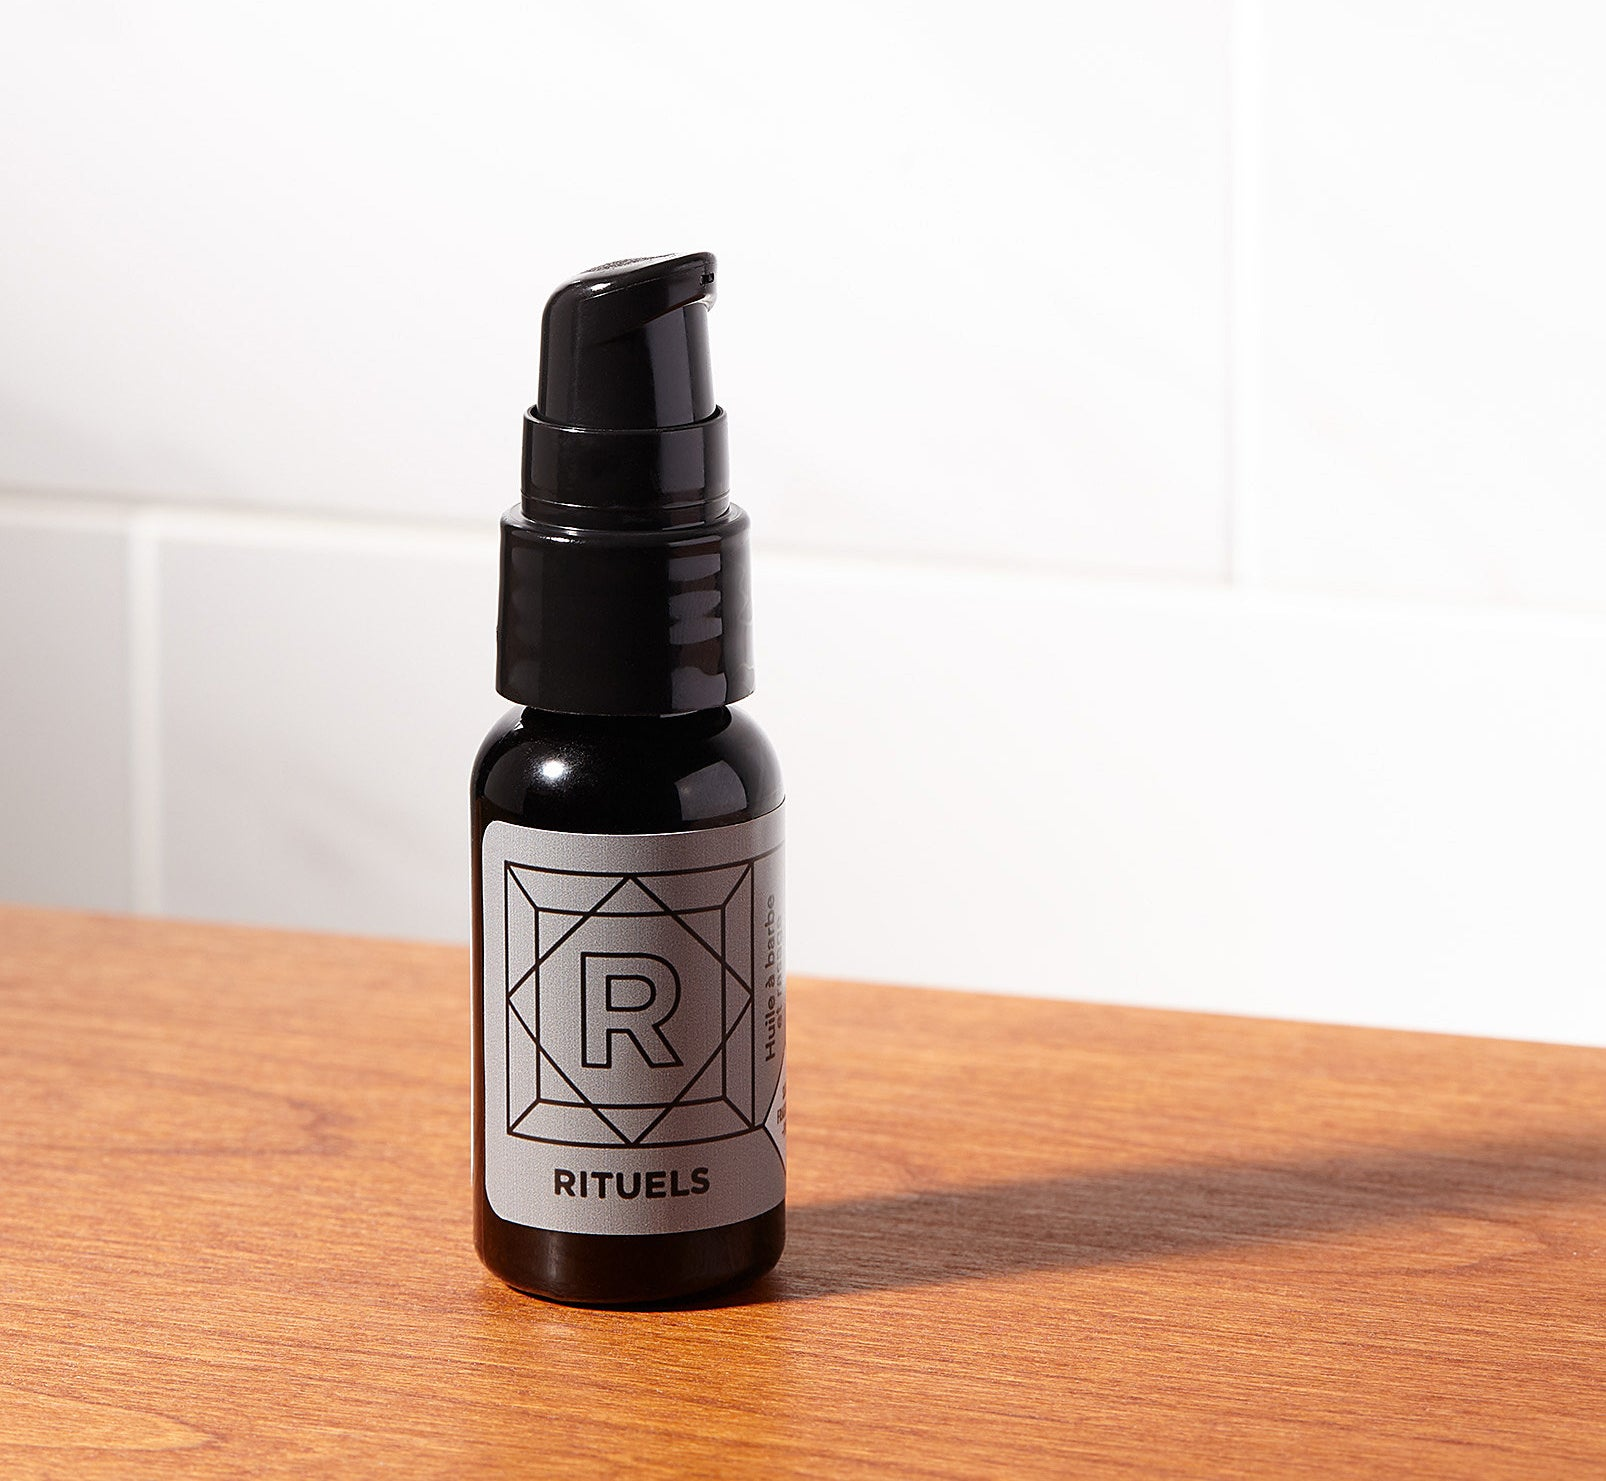 The beard oil in a dark container on a low table